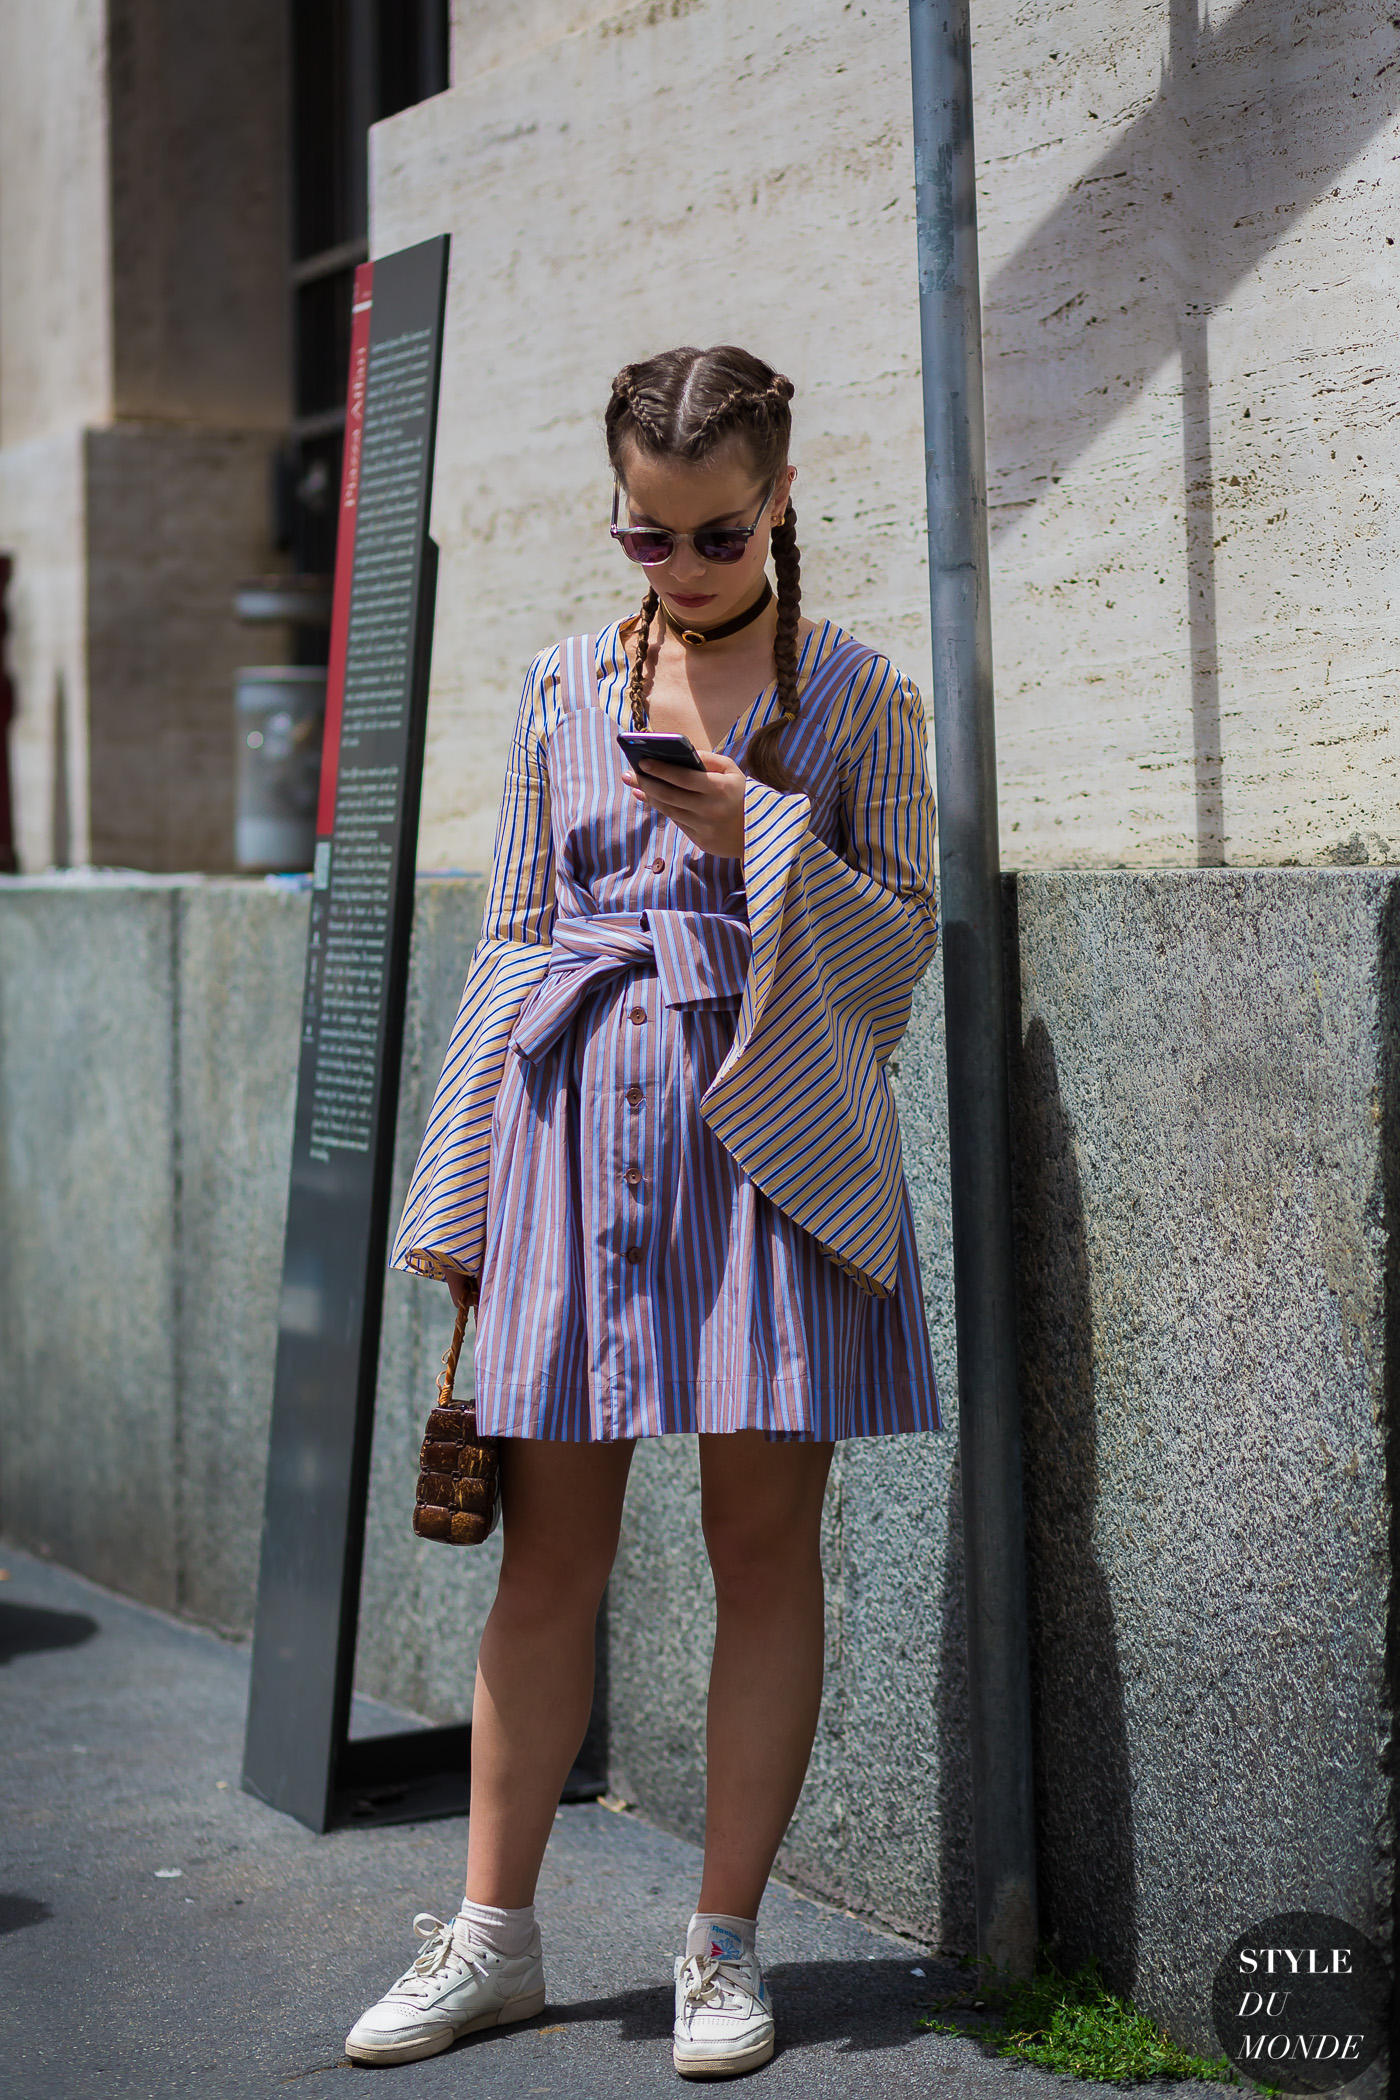 Before Salvatore Ferragamo by STYLEDUMONDE Street Style Fashion Photography